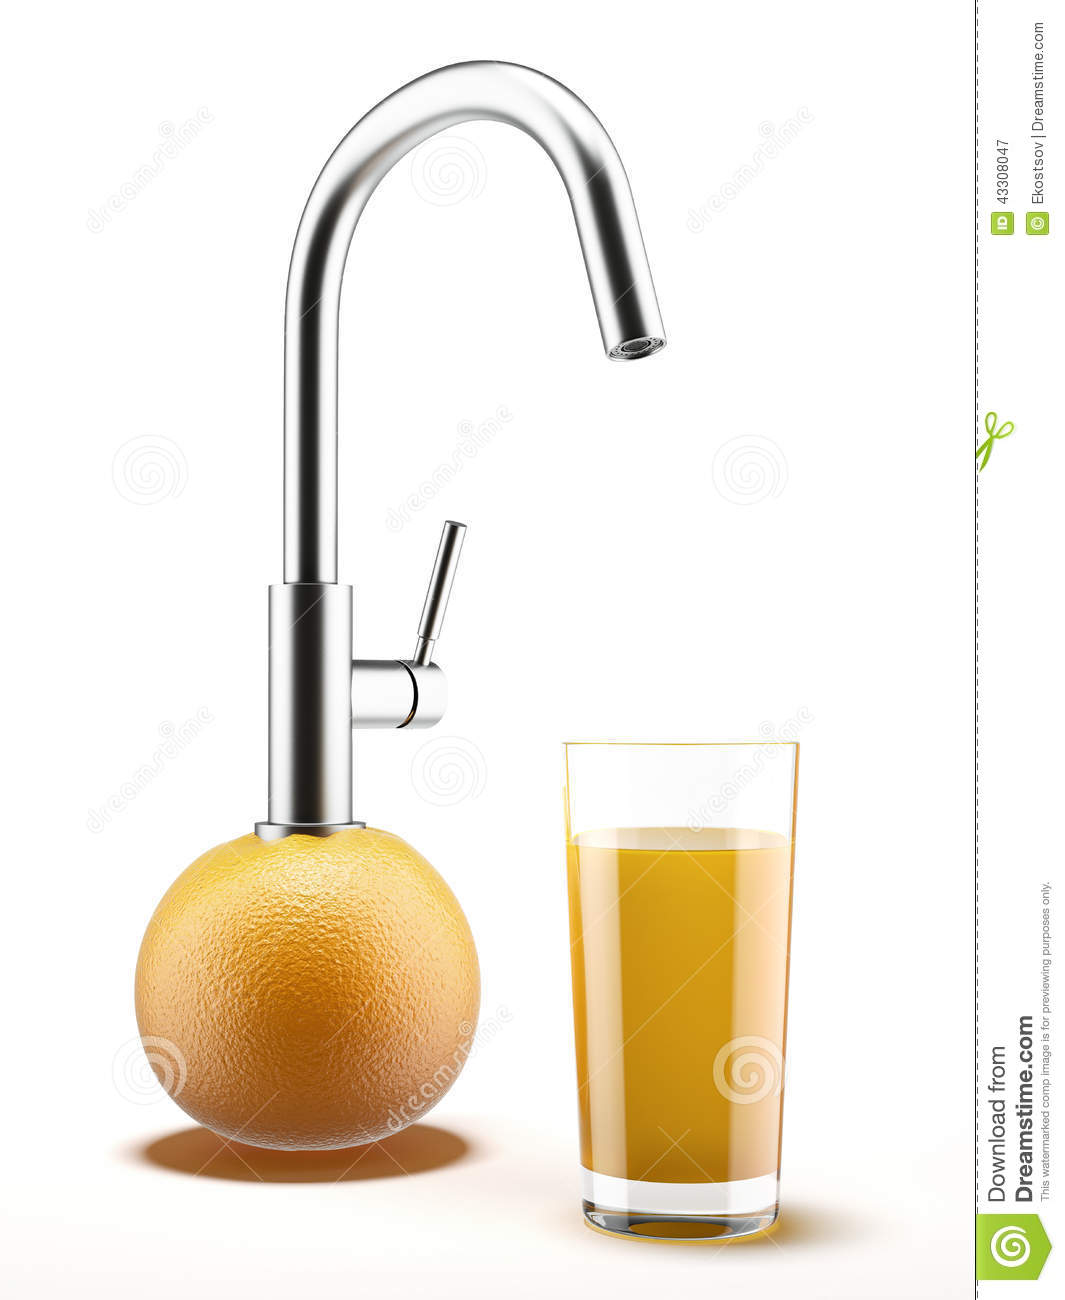 Orange with water tap